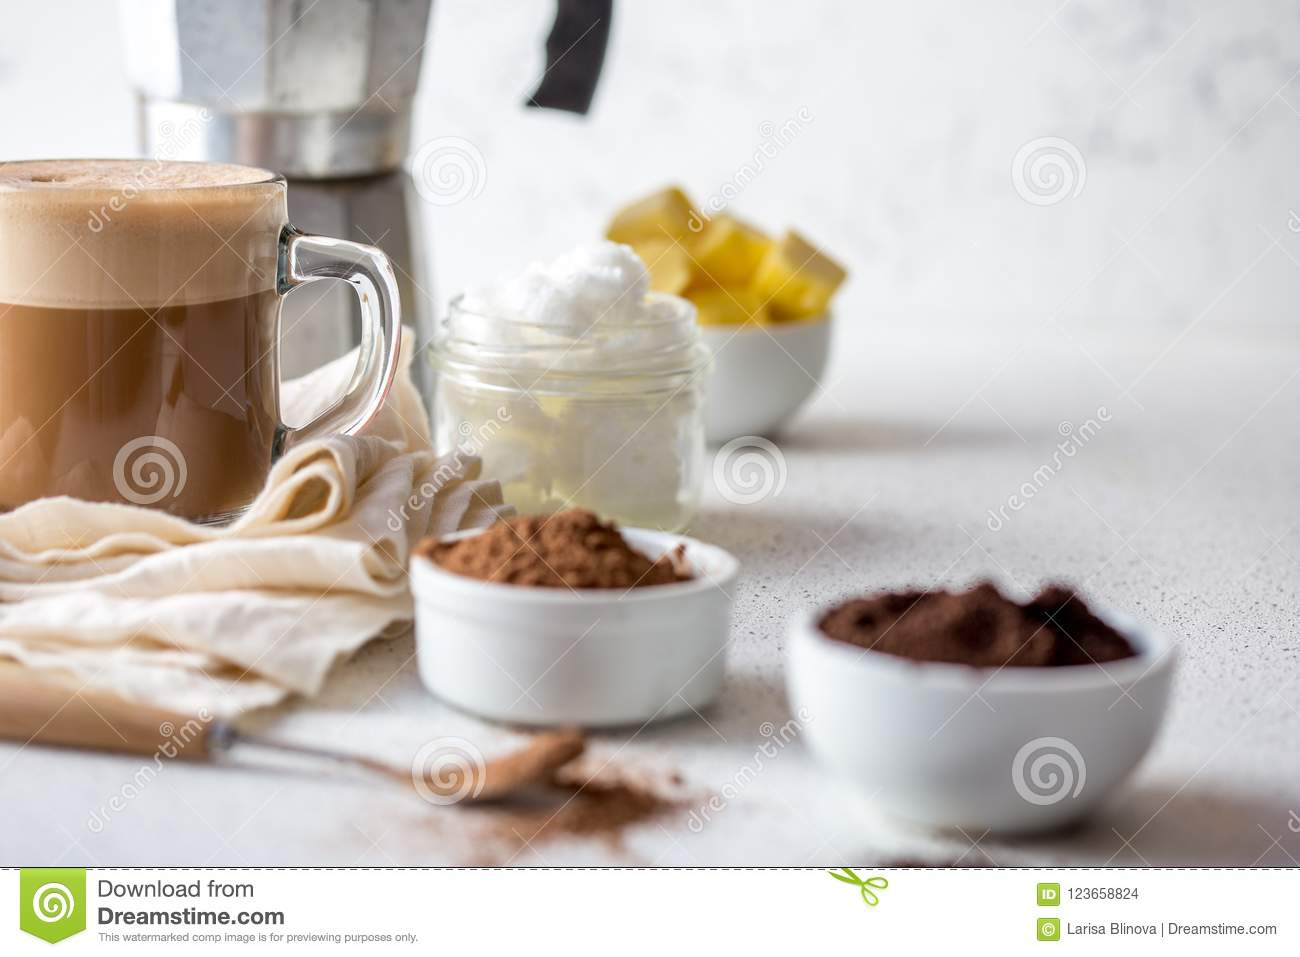 KETOGENIC KETO DIET DRINK. Coffe and cacao blended with coconut oil. Cup of bulletproof coffe with cacao and ingredients